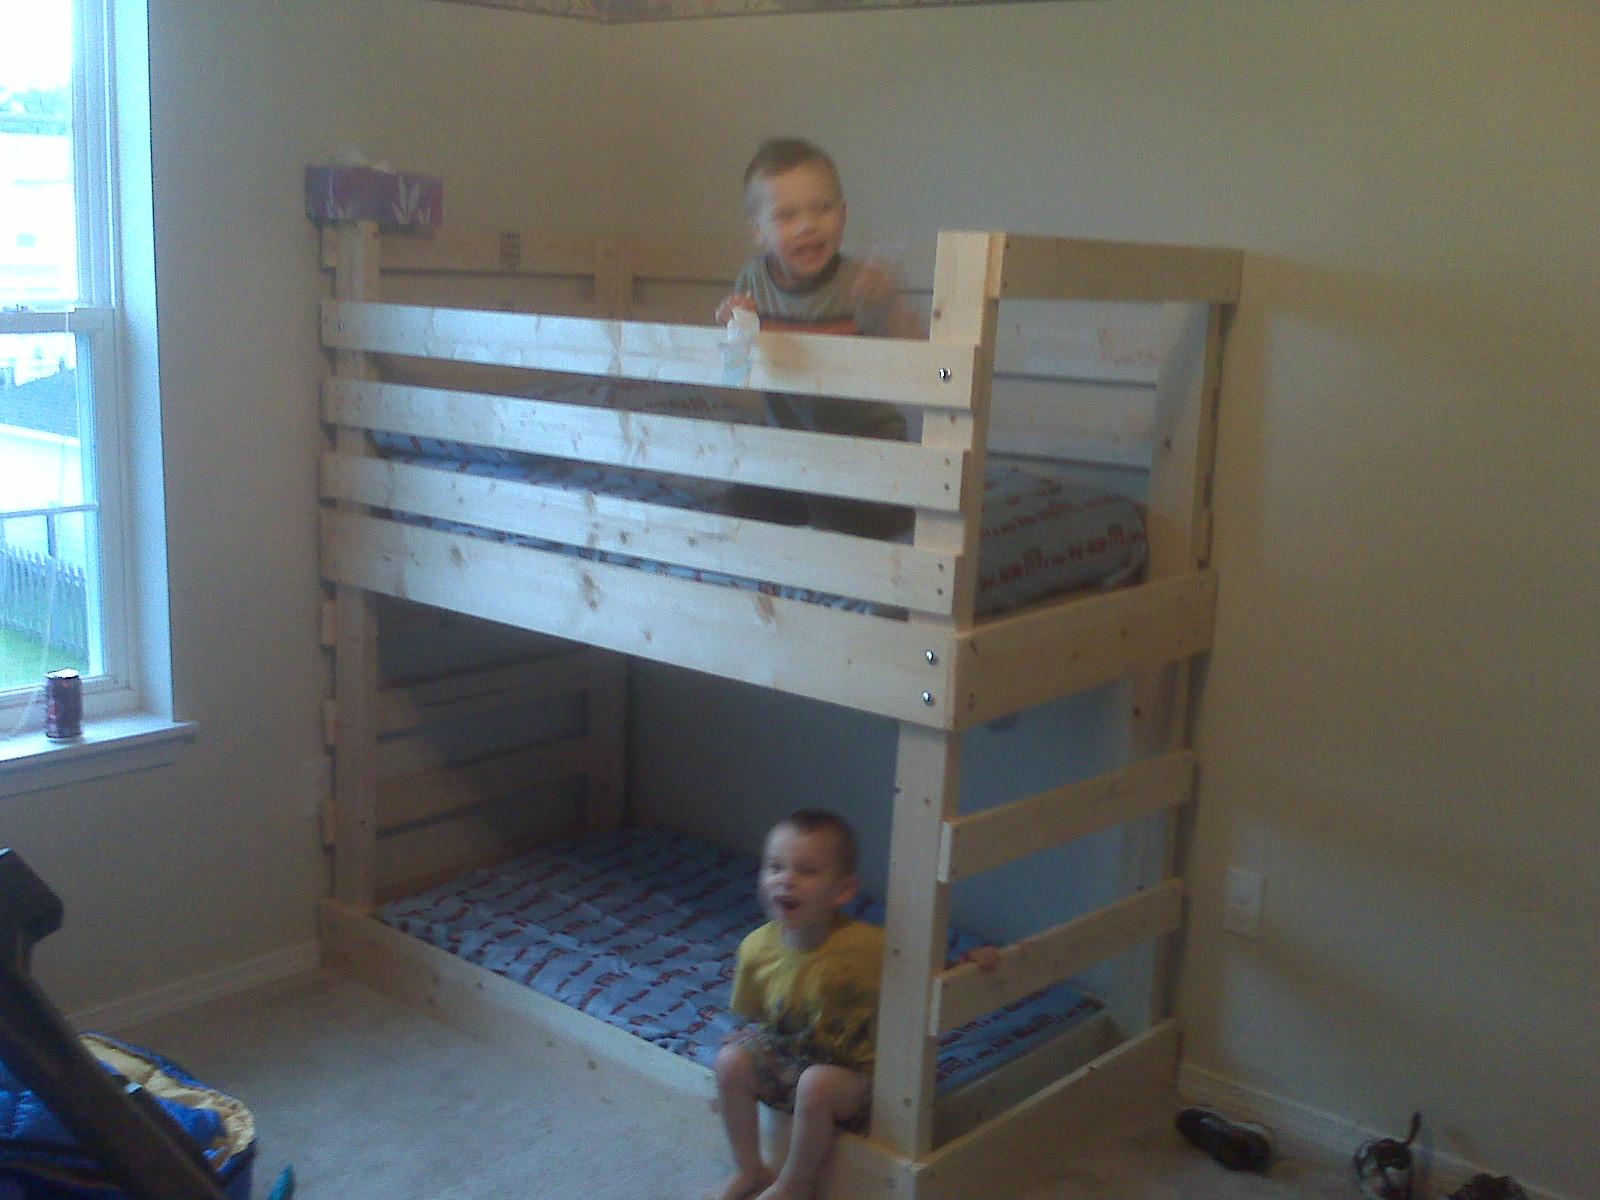 Best ideas about Kids Bed DIY . Save or Pin 25 DIY Bunk Beds with Plans Now.